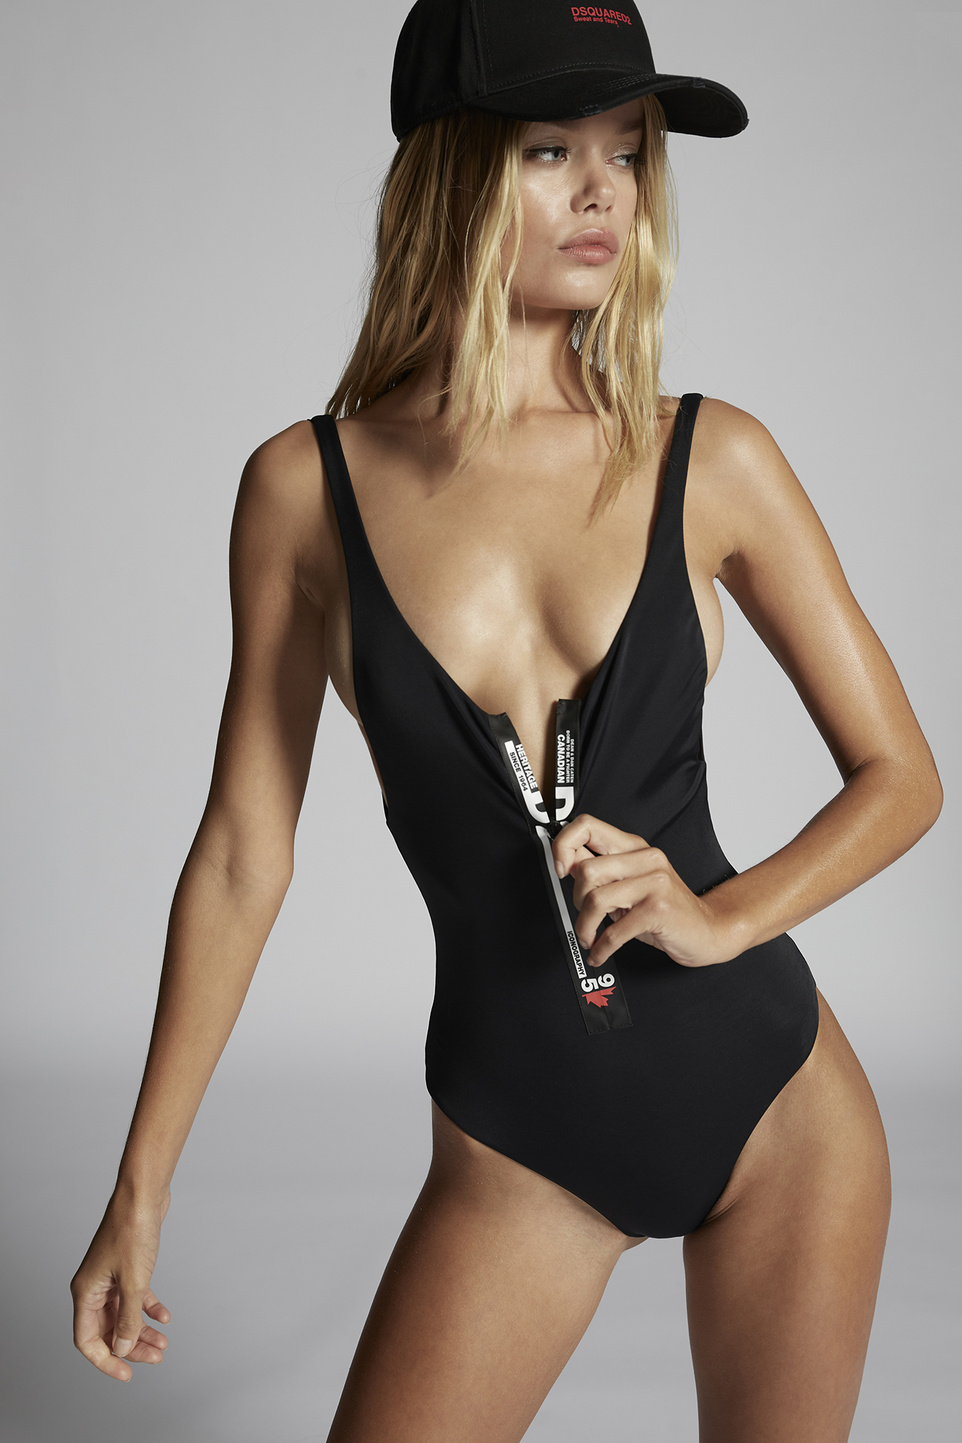 D2Line Swimsuit by Dsquared2, available on dsquared2.com for $310 Frida Aasen Dress Exact Product